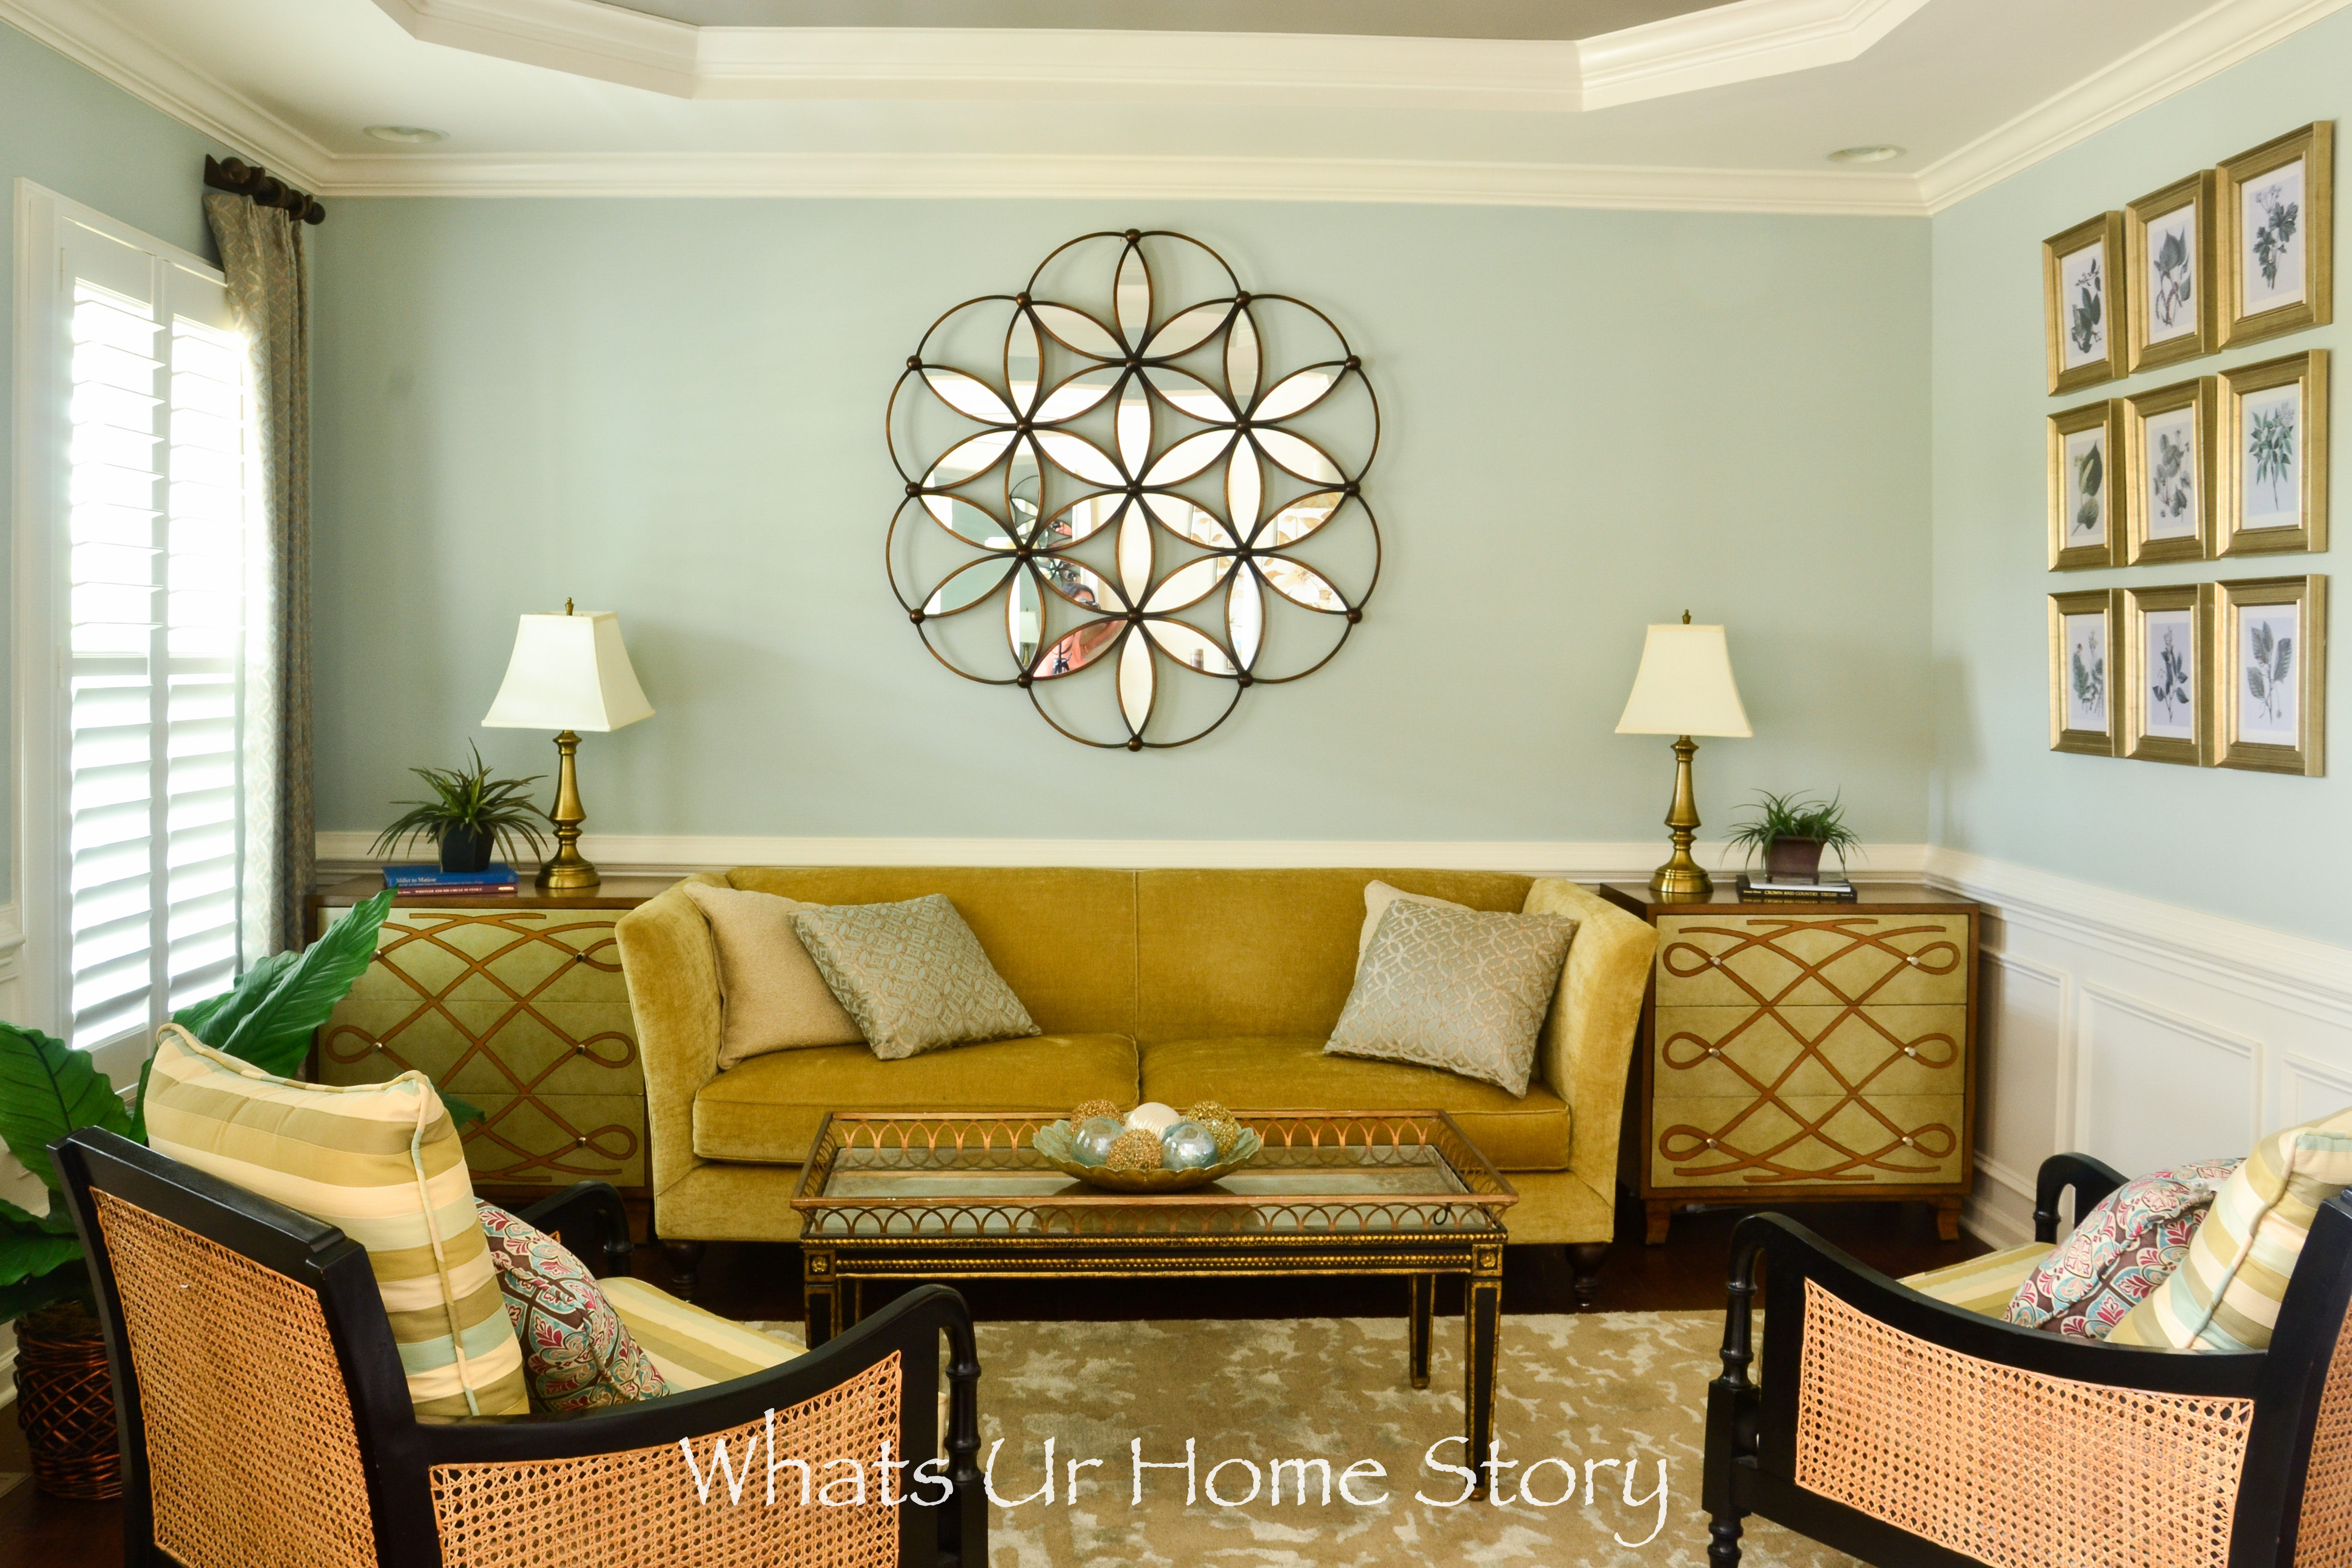 Neutral & Eclectic Home Tour | Whats Ur Home Story